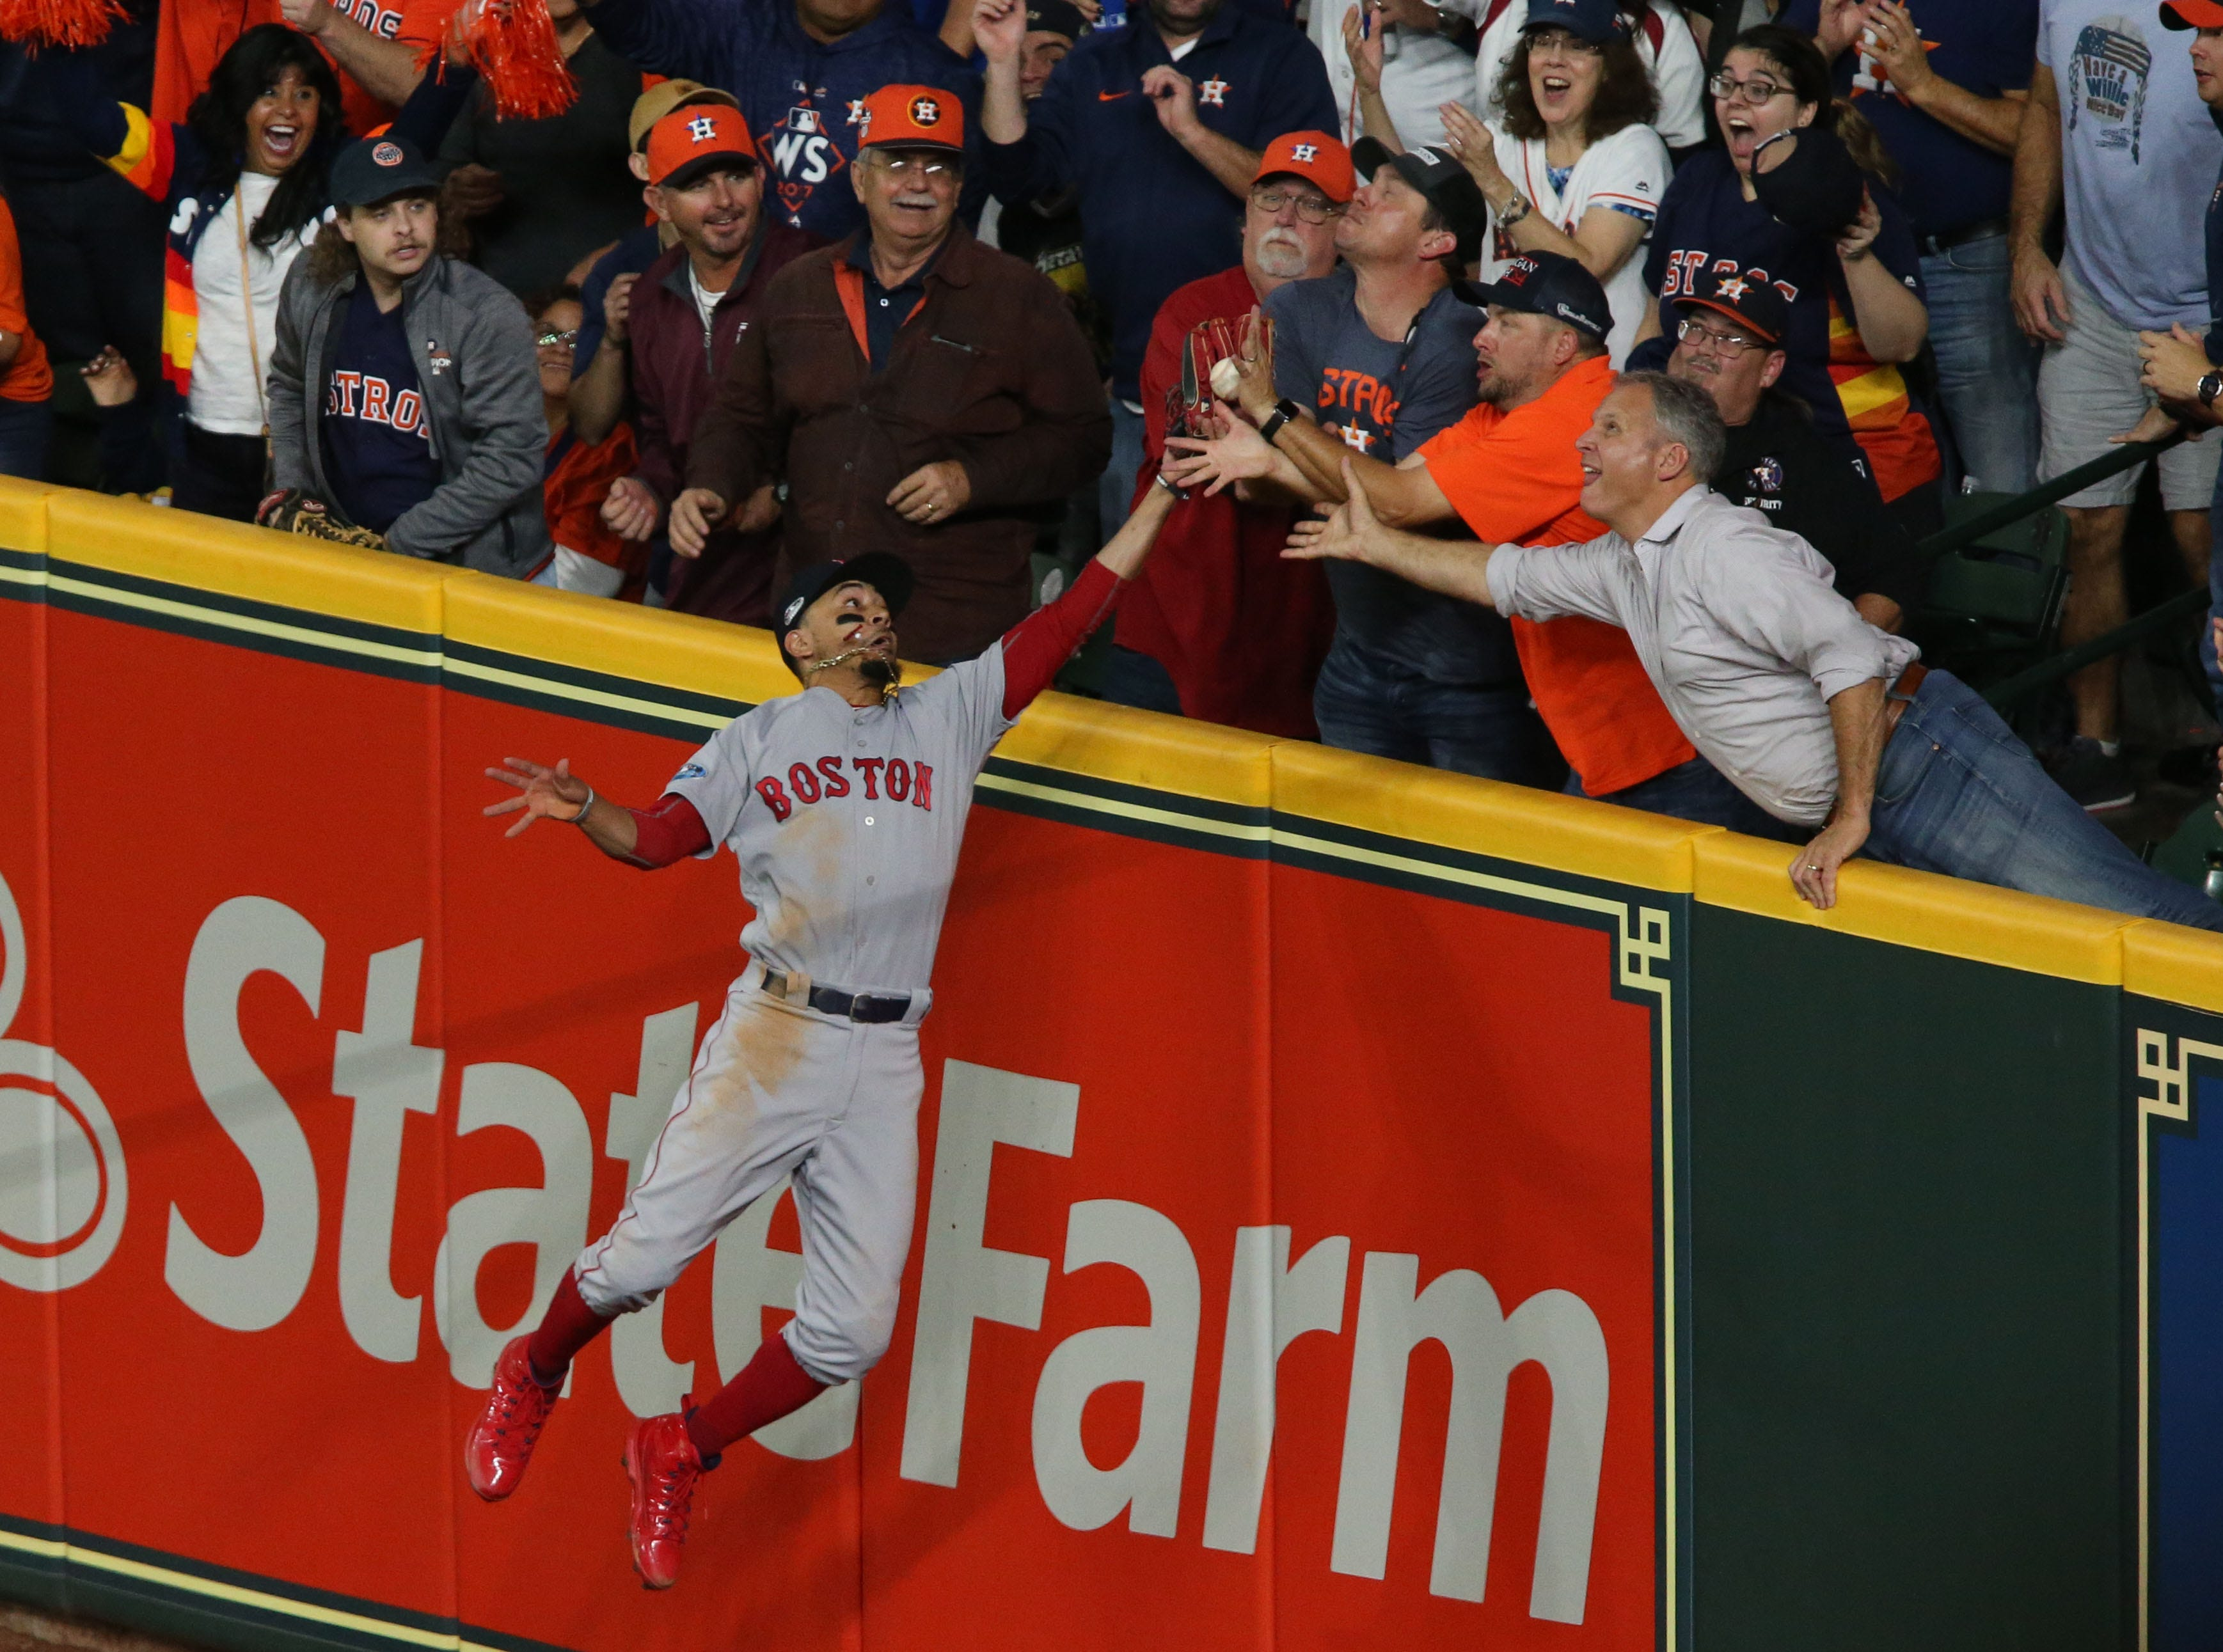 Oct. 17: Houston Astros second baseman Jose Altuve is called out after a fan interfered with Boston Red Sox right fielder Mookie Betts (50) during the first inning in Game 4 of the ALCS.